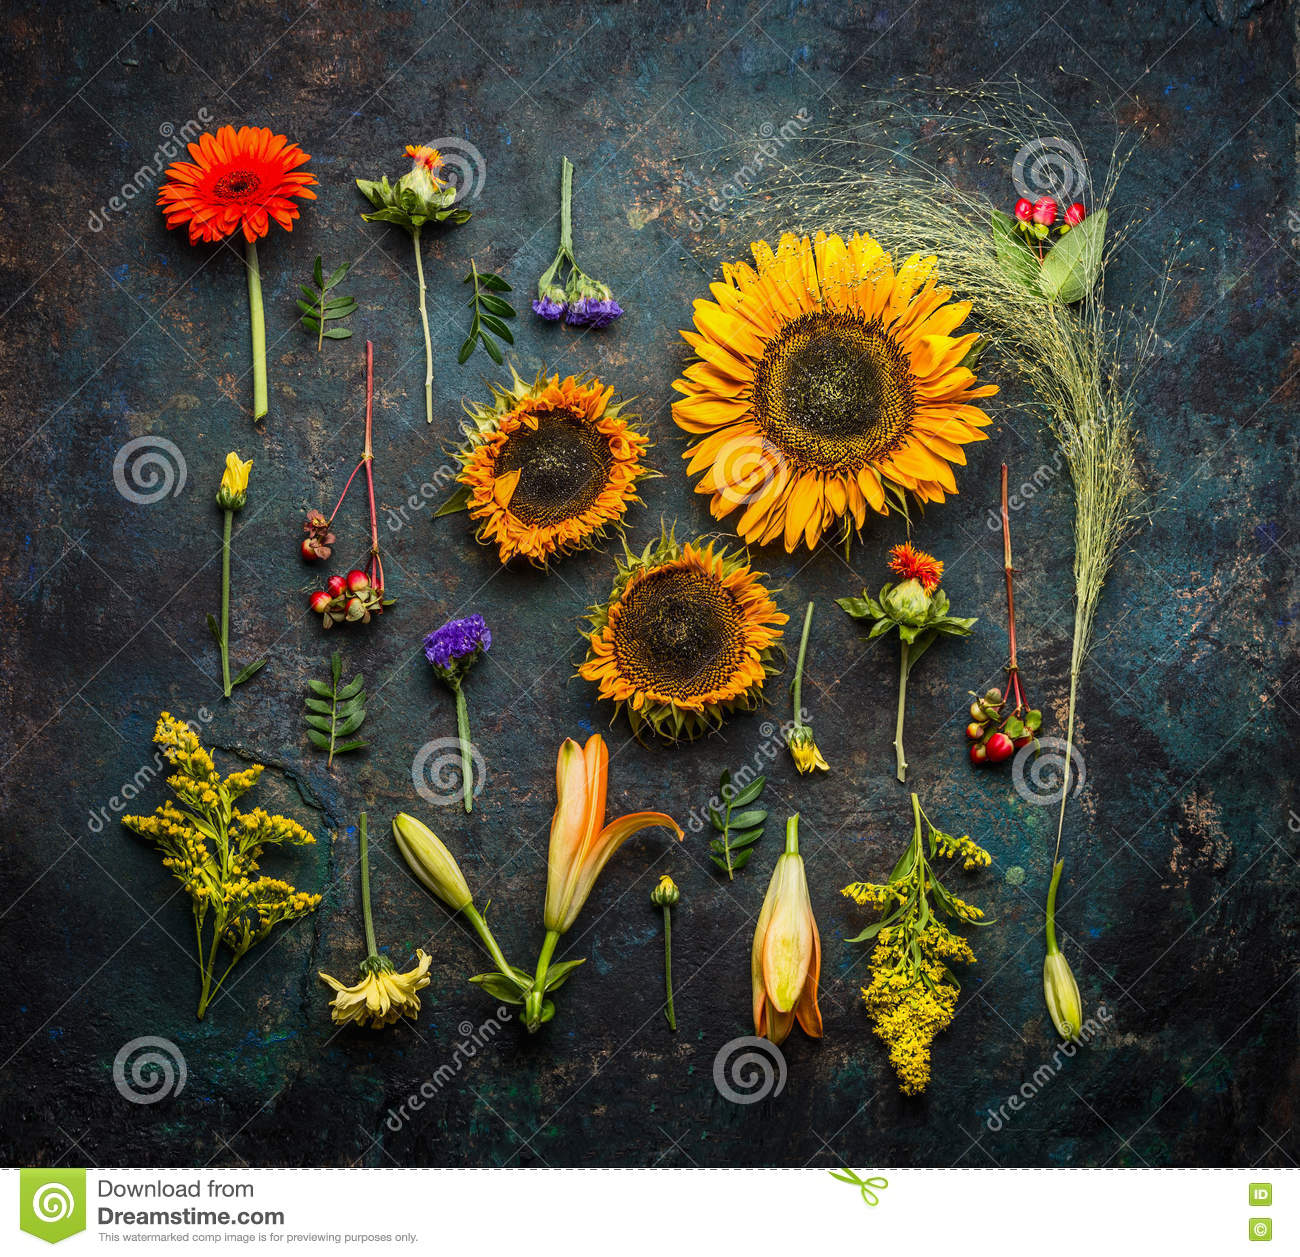 Various autumn plant and flowers on dark vintage background, top view